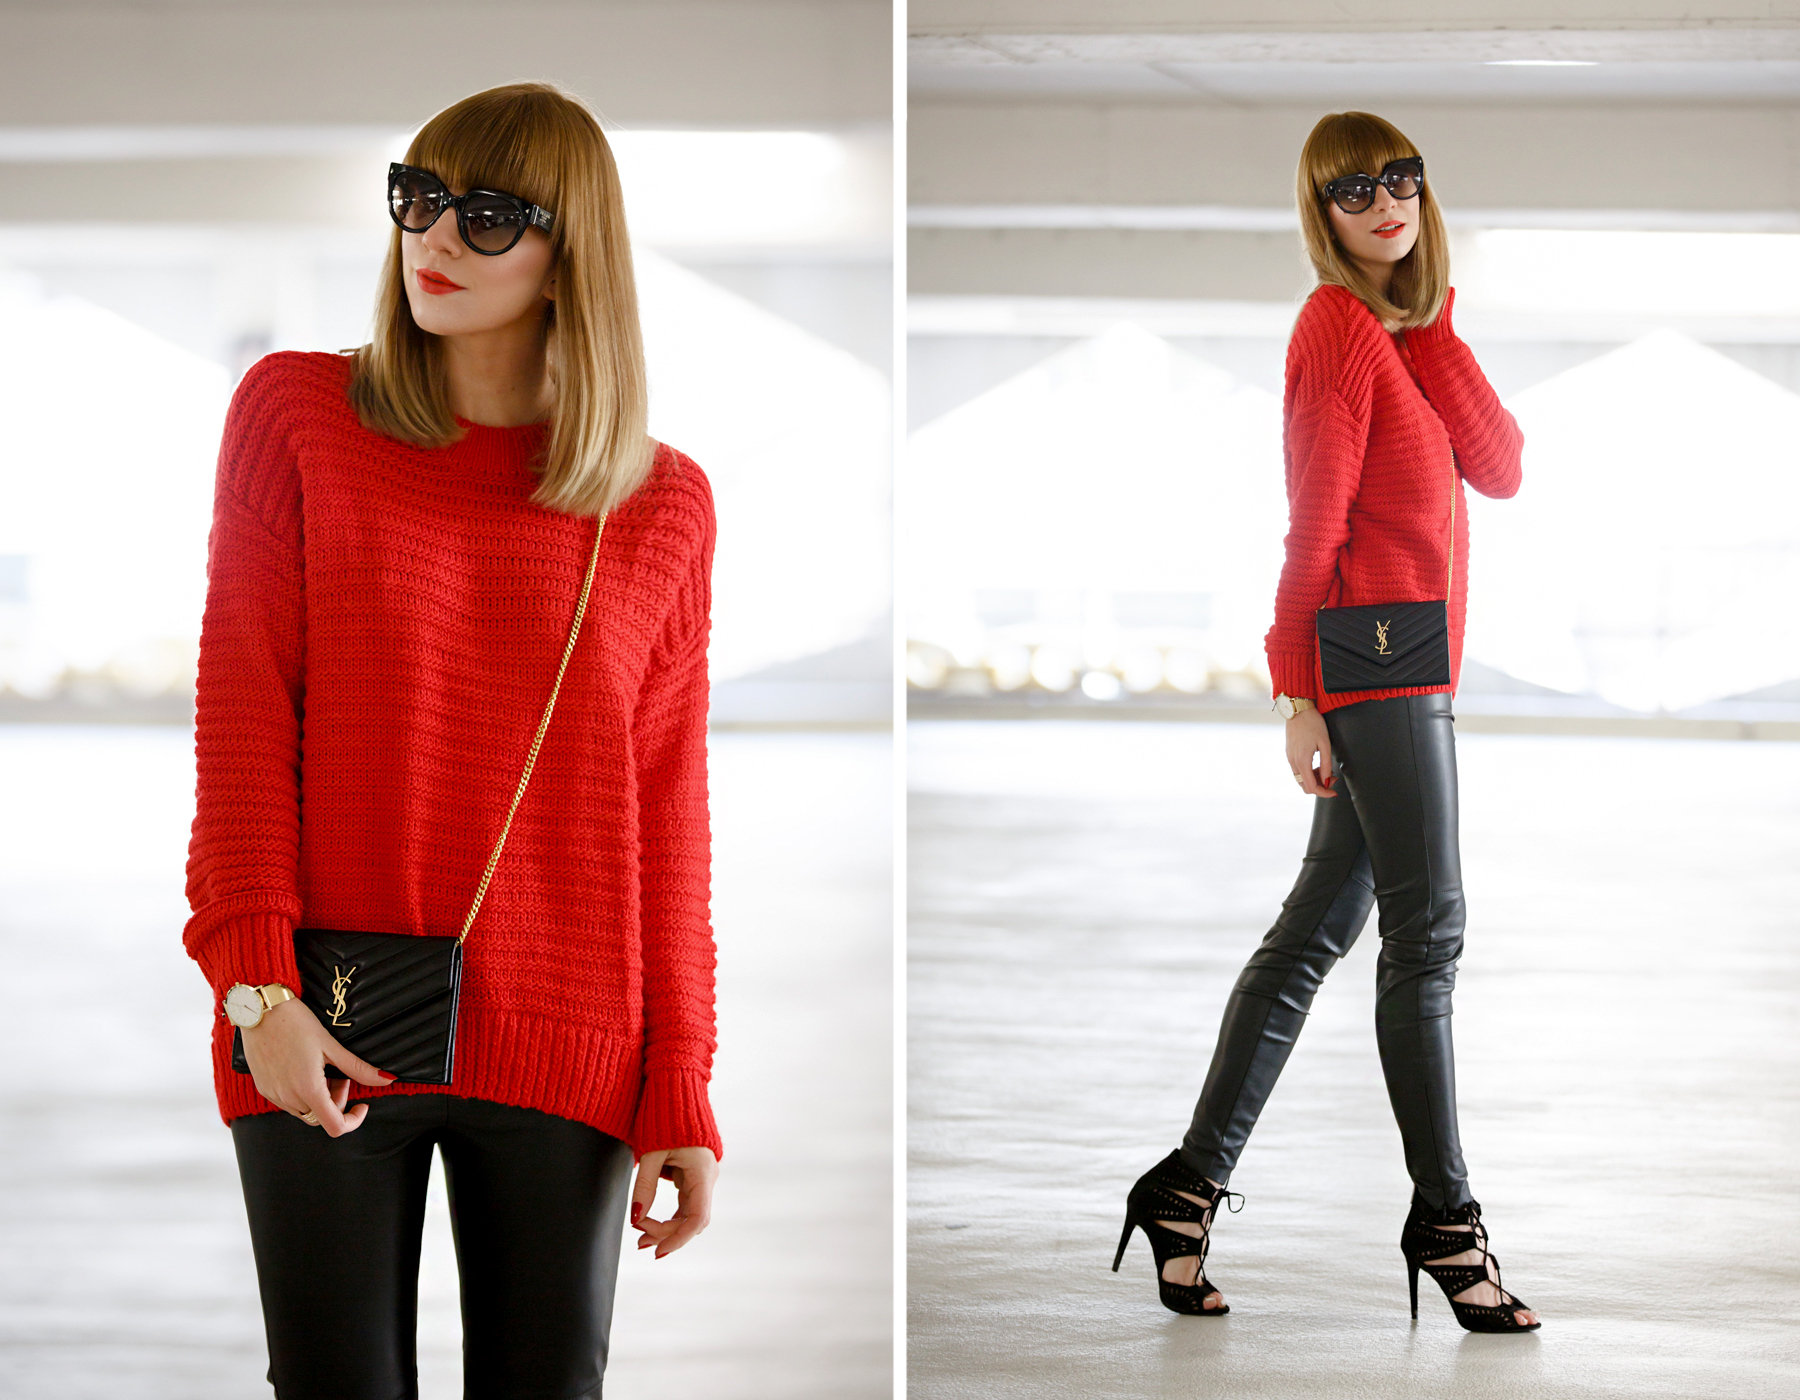 red pullover black leather pants golden details rosefield watch ysl saint laurent paris monogram bag prada celine sunglasses cat eye cute french winter look ootd outfit styling cats & dogs blog ricarda schernus fashionblogger germany dusseldorf 1